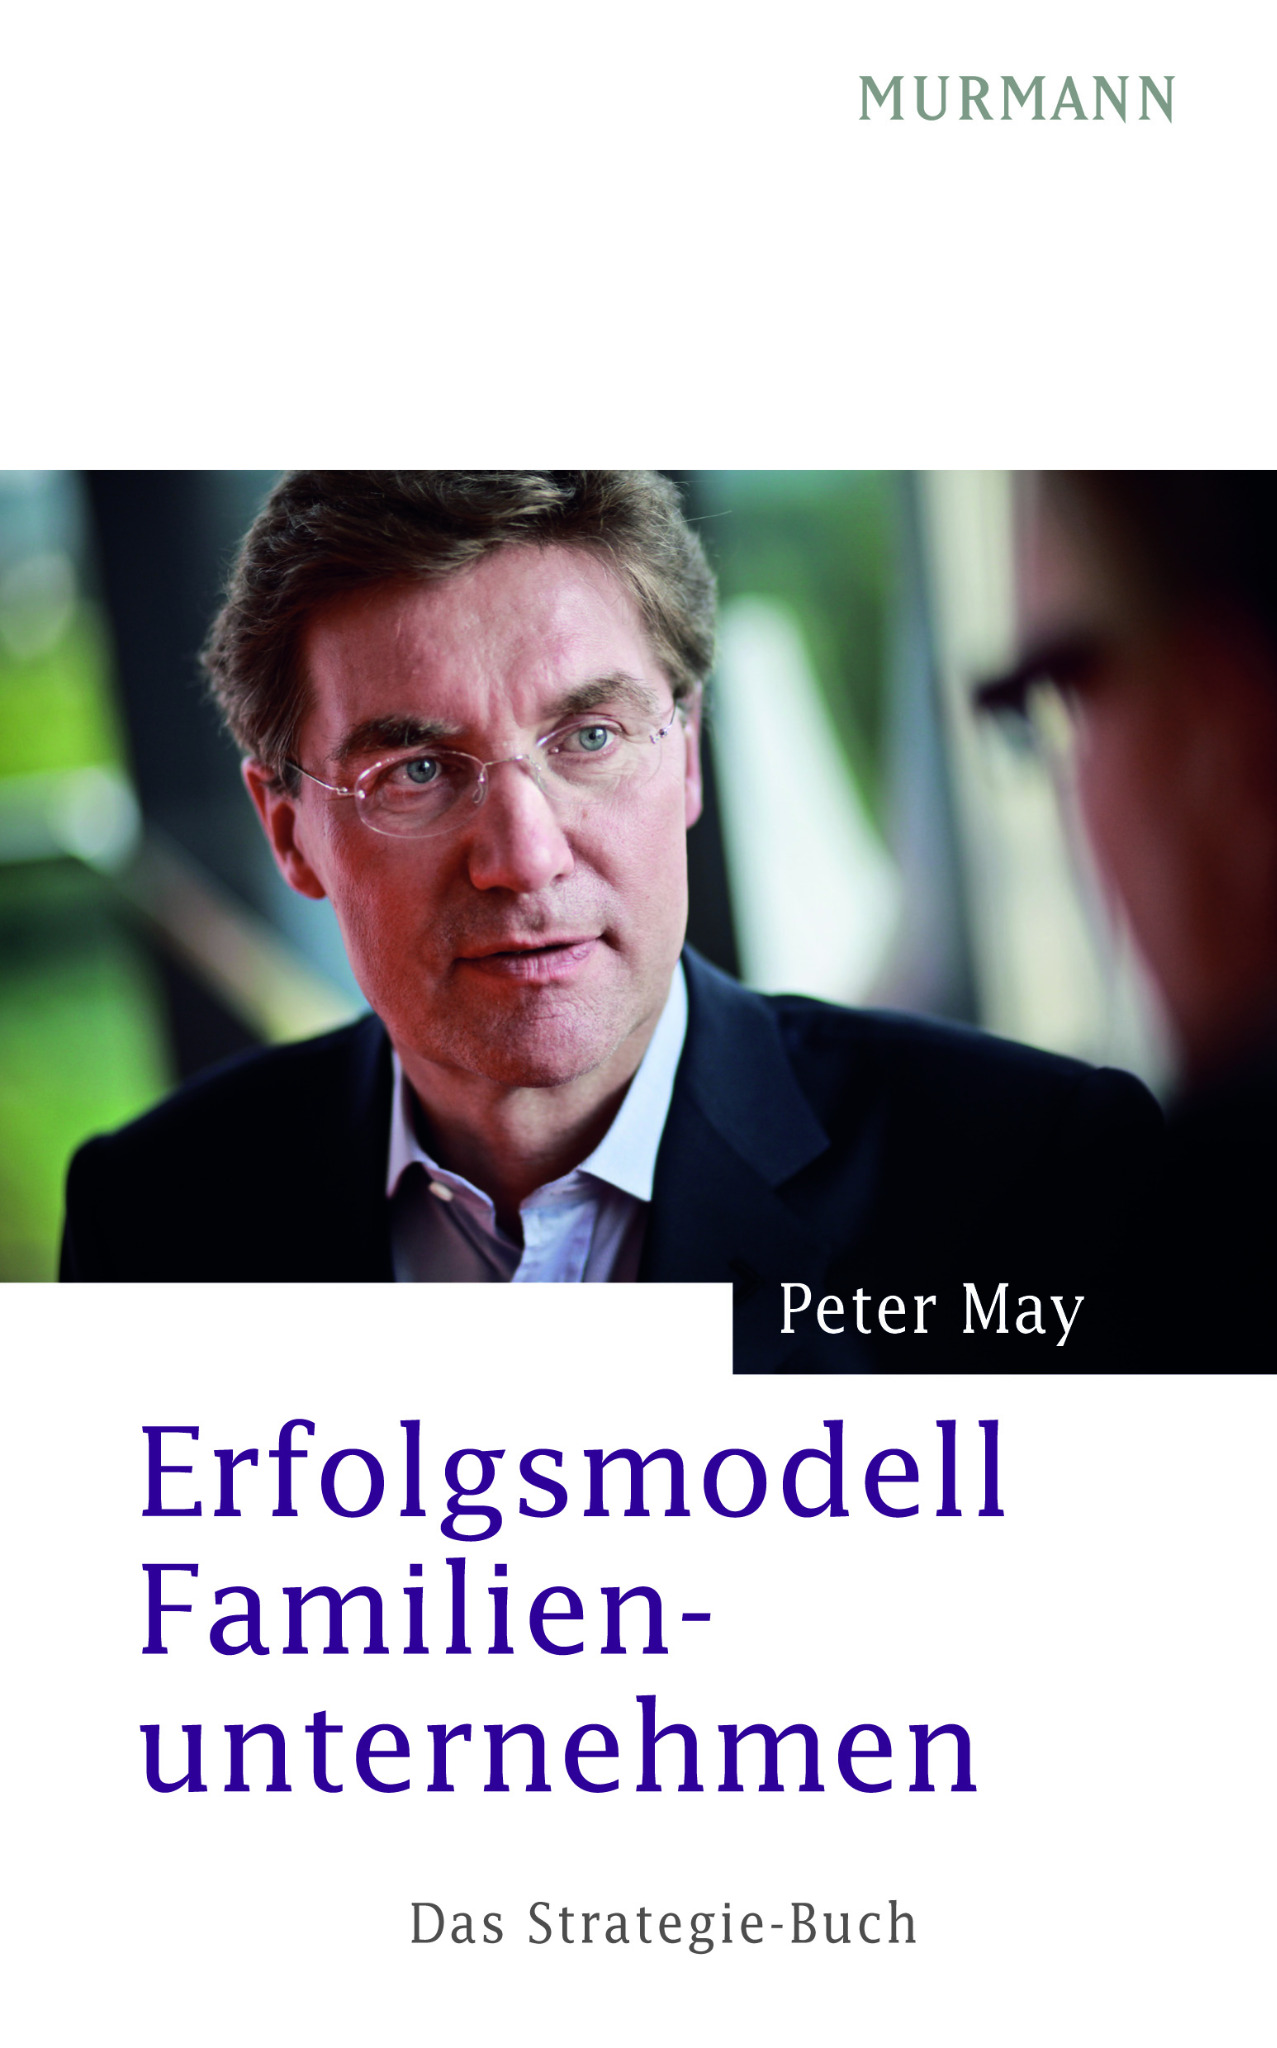 Erfolgsmodell Familienunternehmen / Peter May